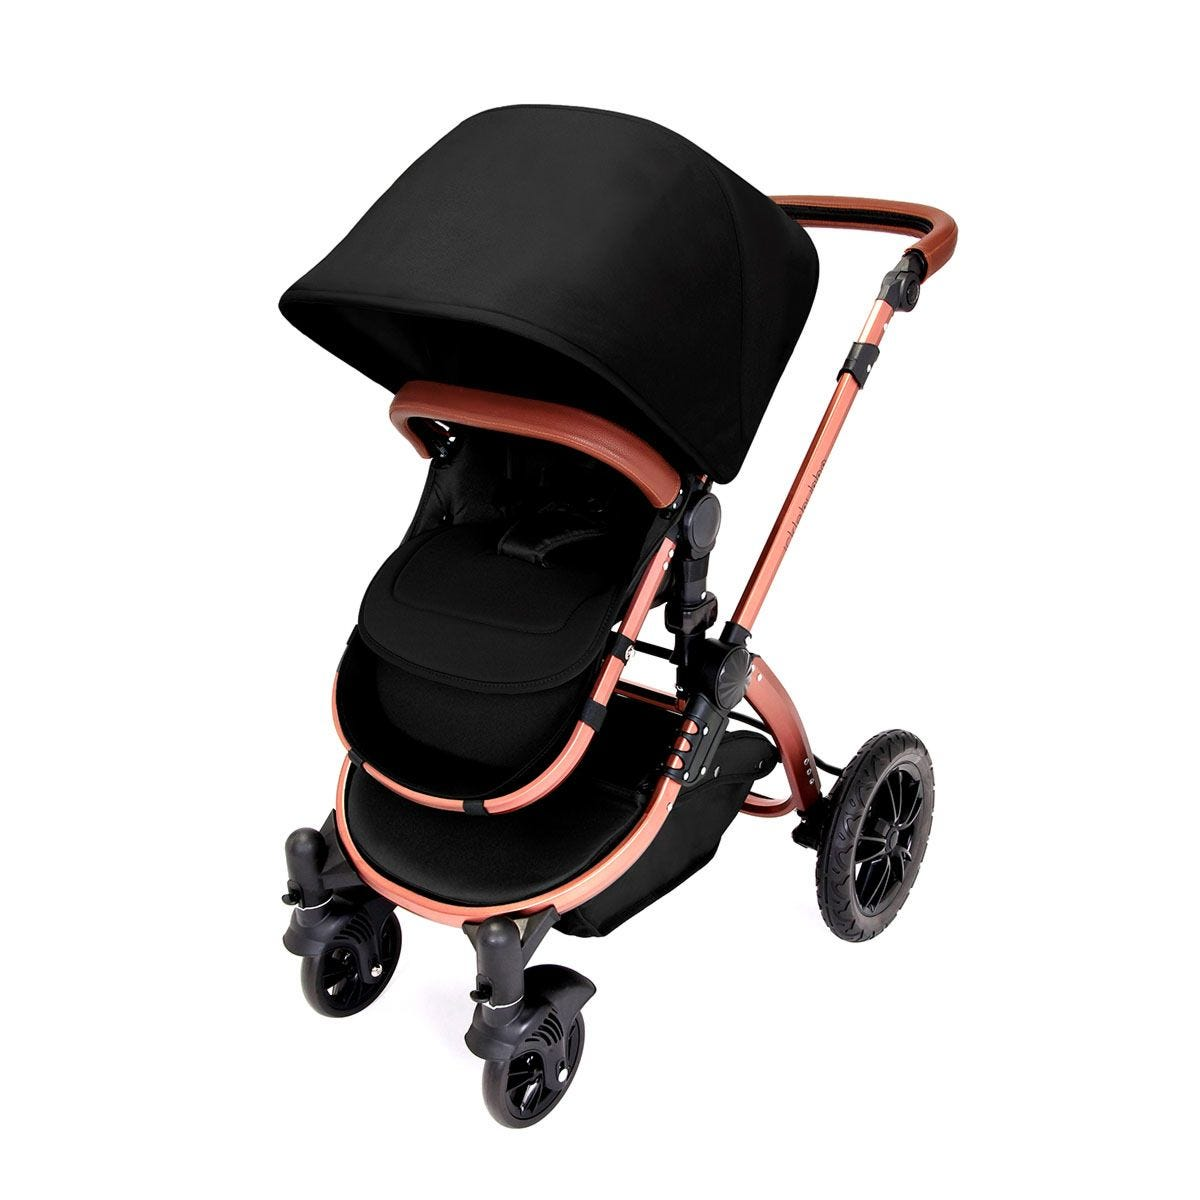 Ickle Bubba Stomp V4 i-Size Travel System with Isofix Base - Midnight on Bronze with Tan Handles